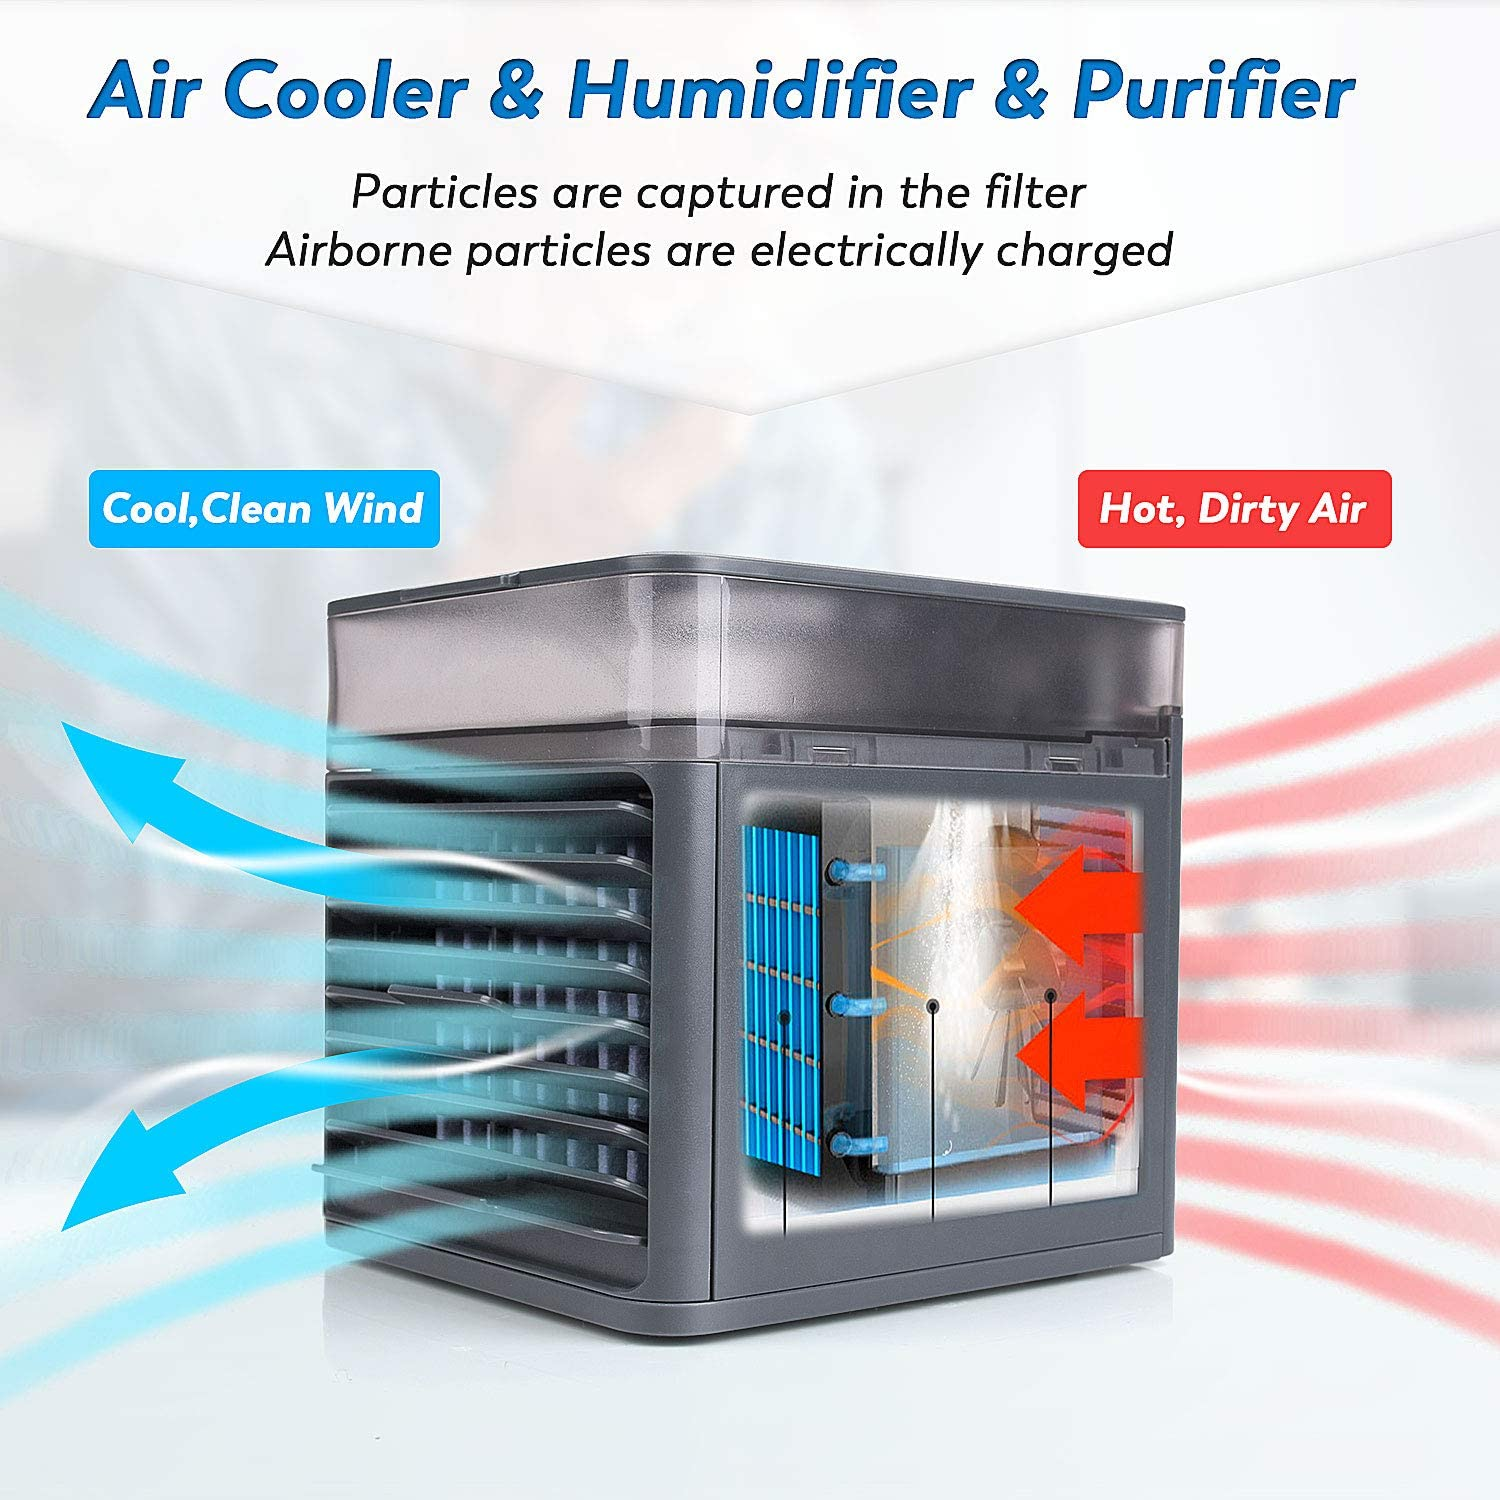 7-Color Light Quiet TESECU Mini Personal USB Air Conditioner 3-in-1 Air Cooler Portable Evaporative Cooler for Home Office 3 Speeds Black with Ice Tray